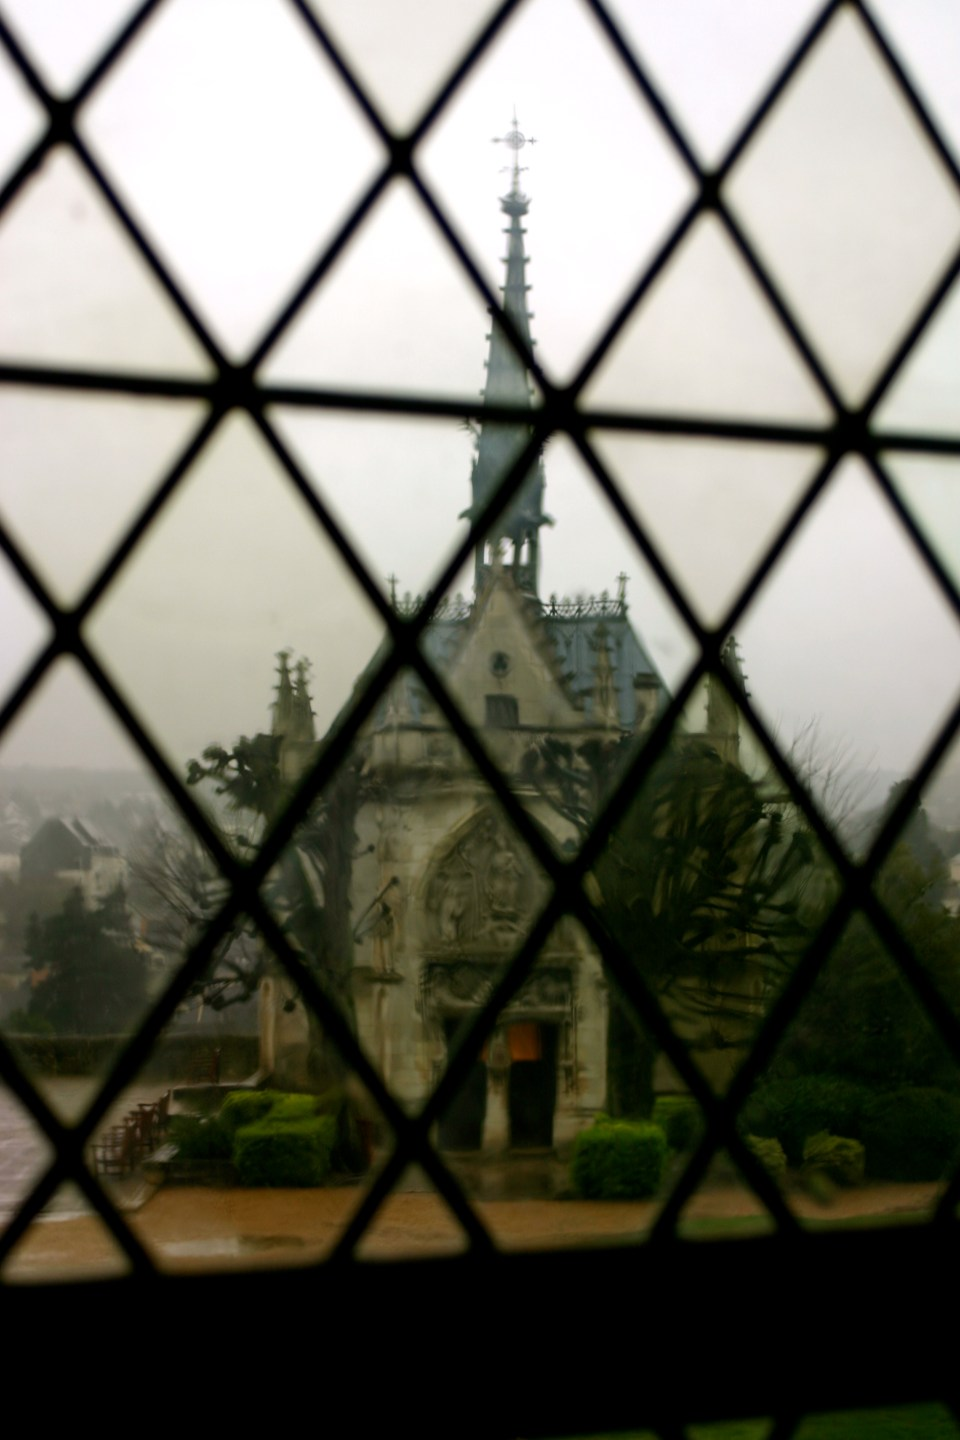 A View of Chapel du Saint-Hubert from inside Chateau Amboise.